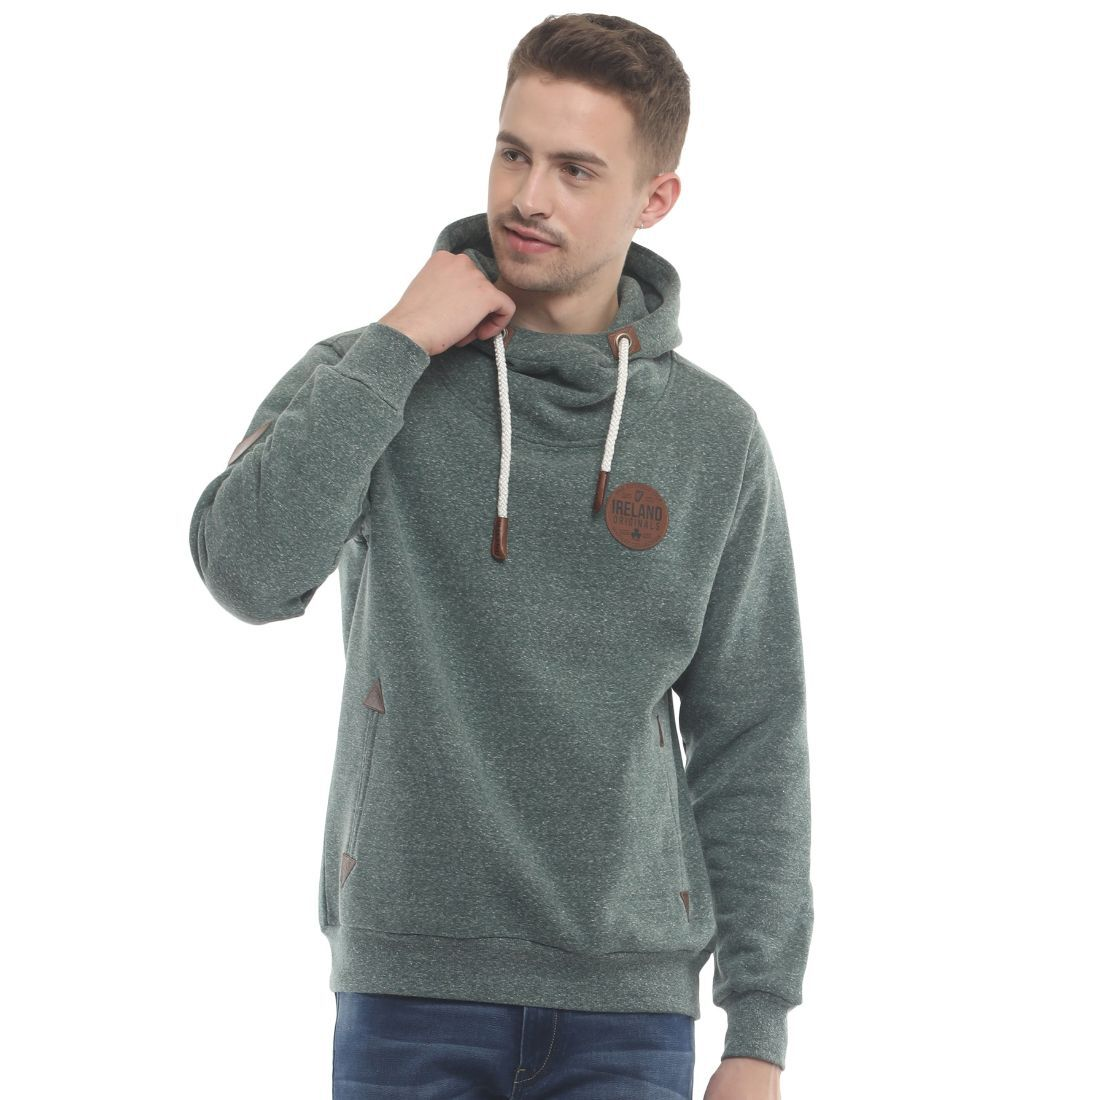 Buy Ireland Hoodie With Leather Patch Nude Colour